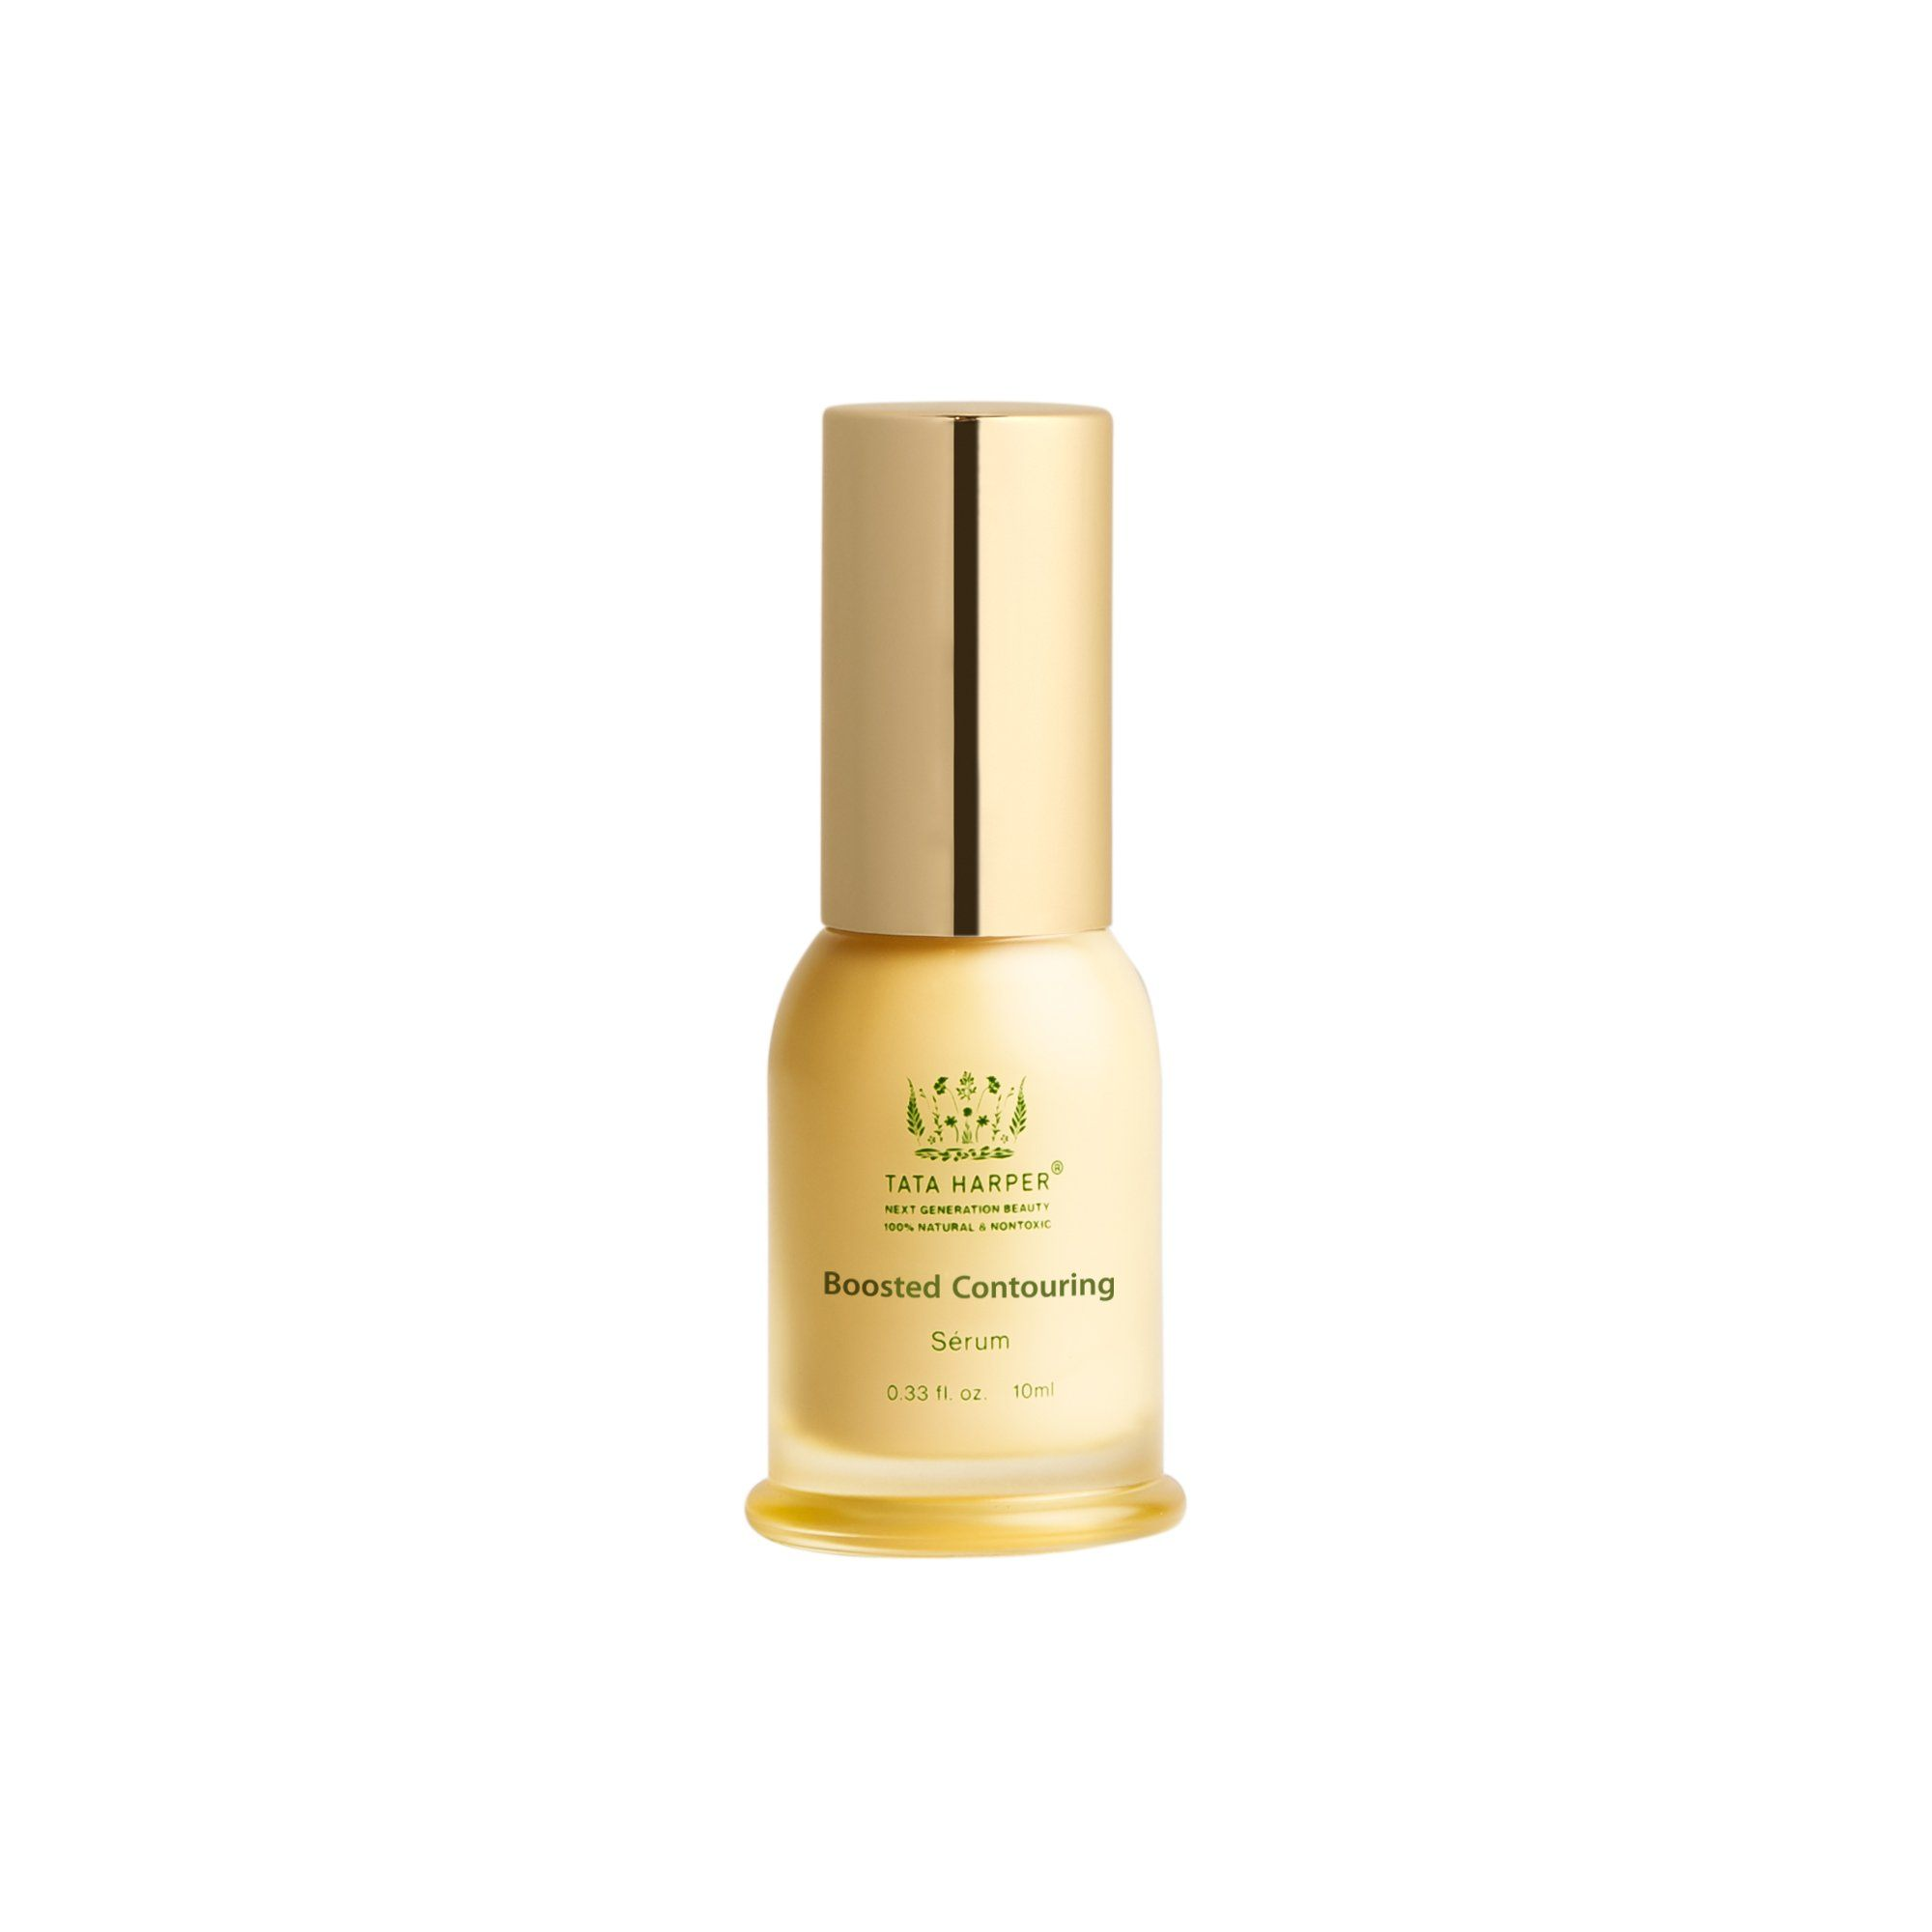 Boosted Contouring Serum 2.0 Mini